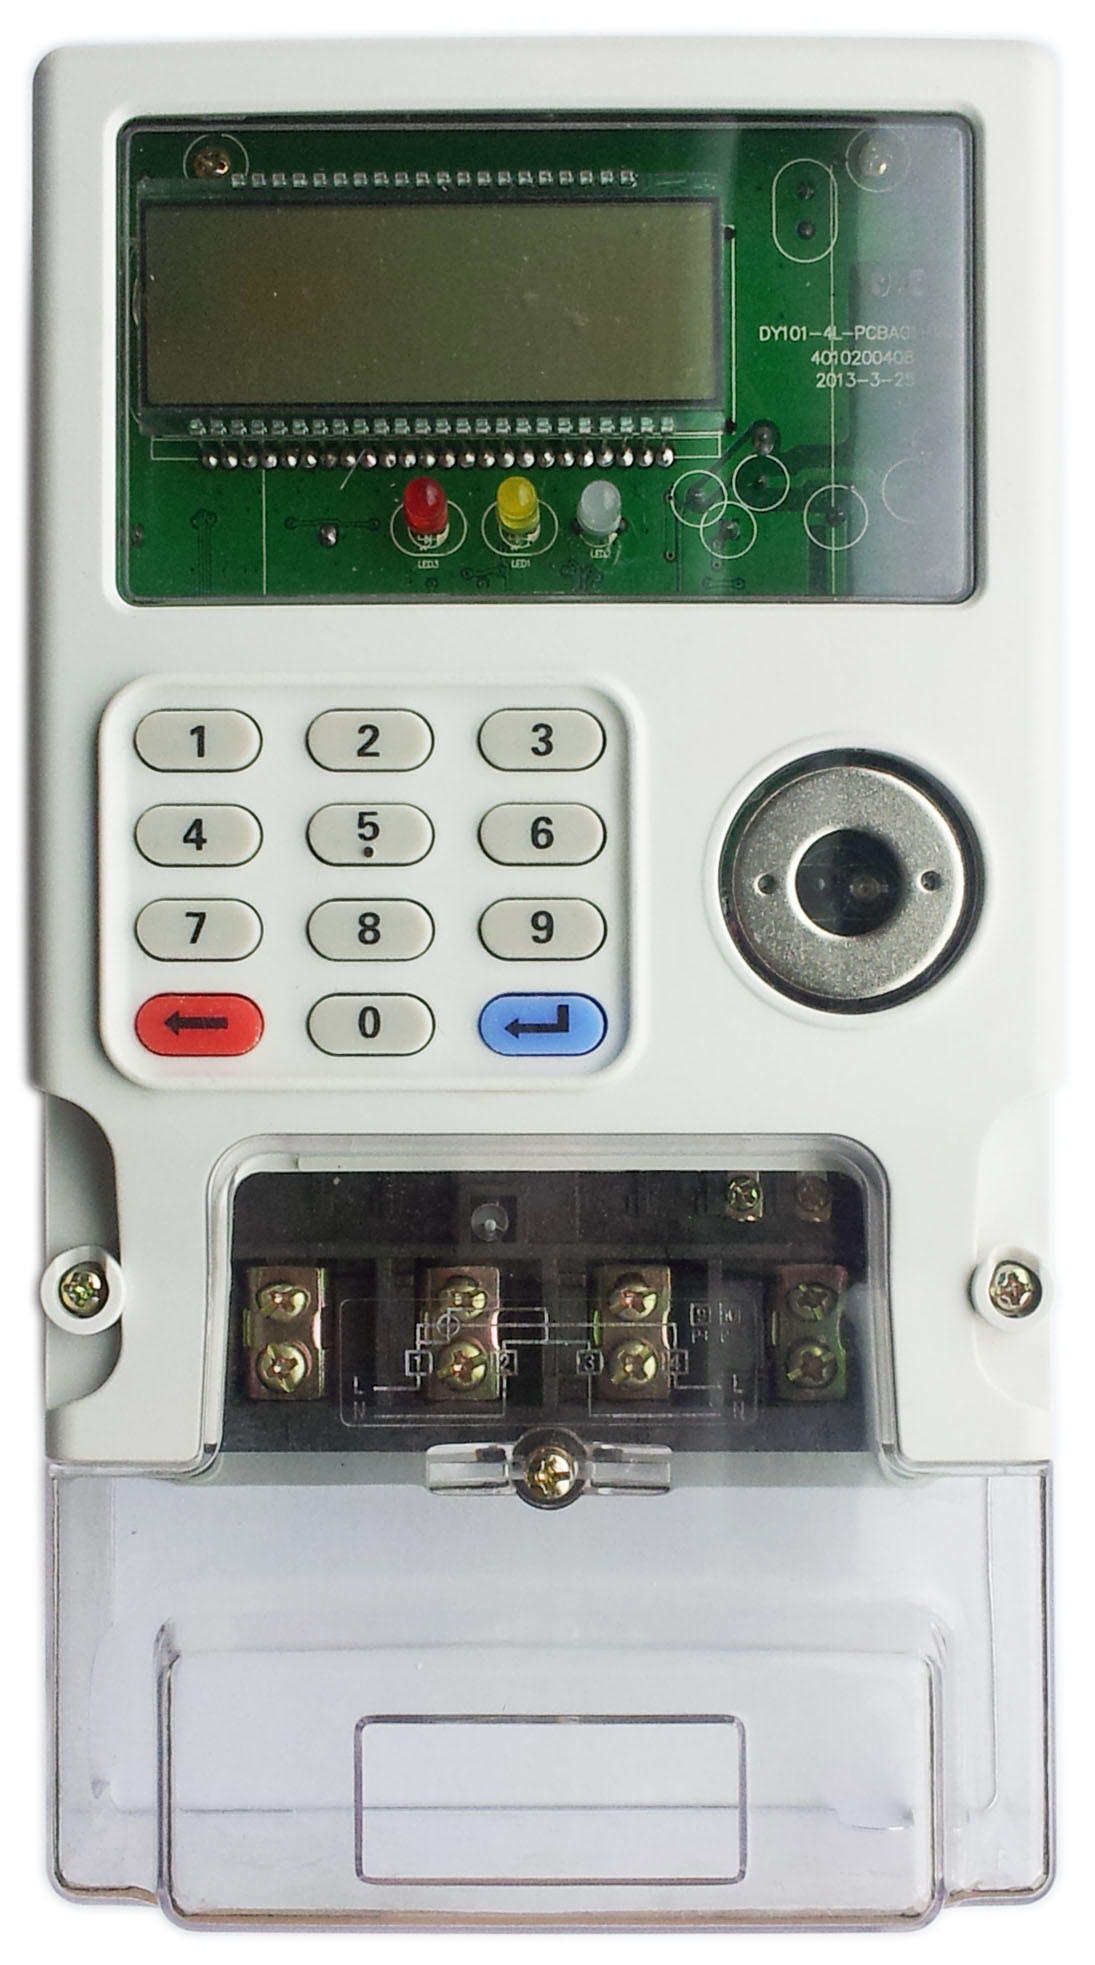 Single Phase Prepaid Energy Meter - with Integrated Keypad, IEC and Sts Compliant, with Certificates of Sts and Cnas